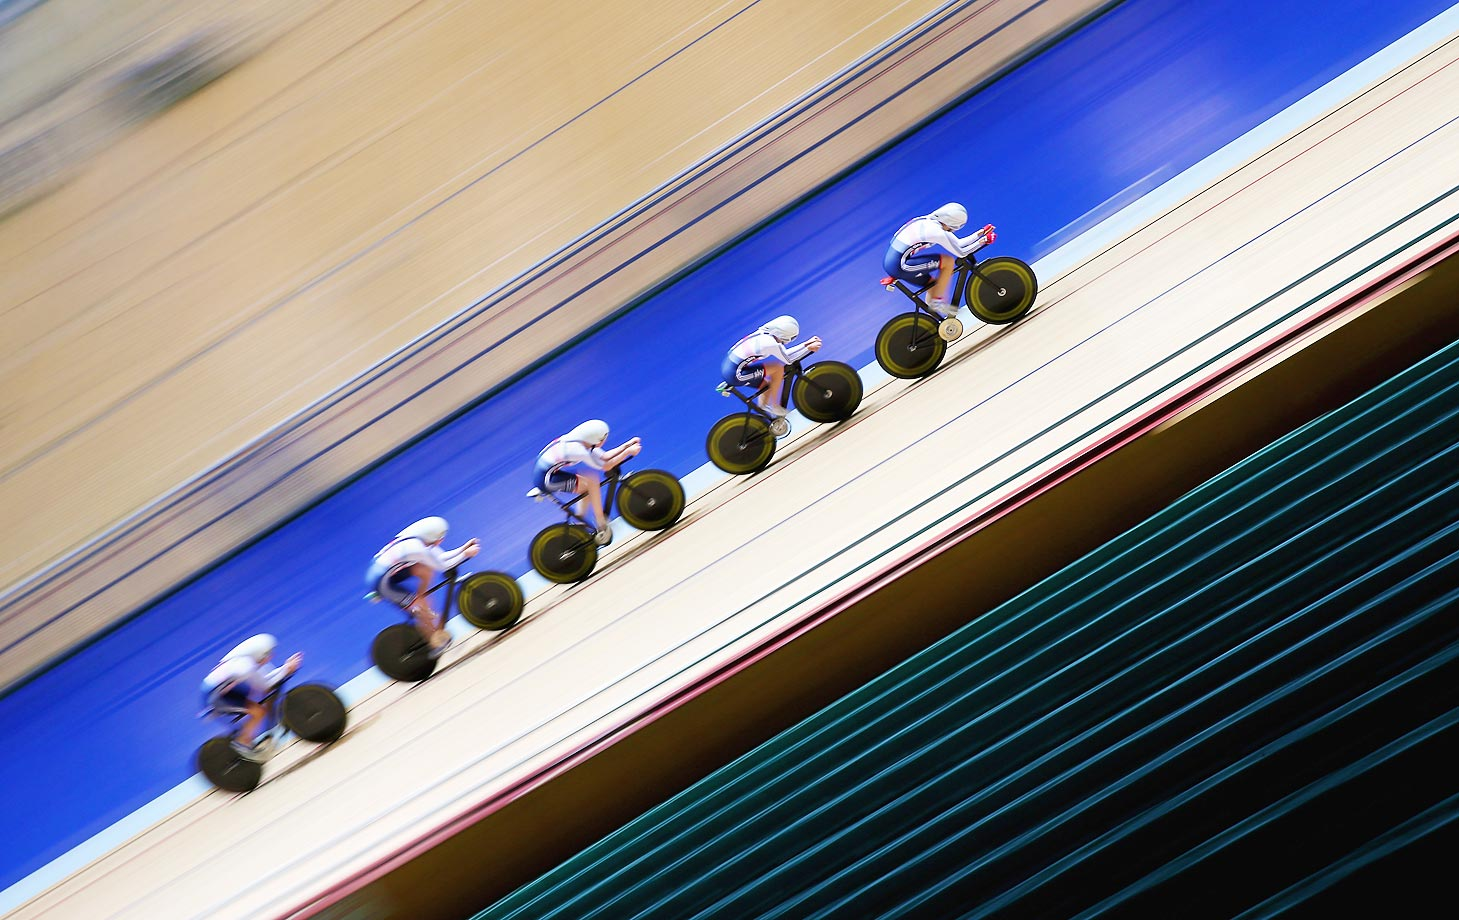 The Team GB women's endurance team of Laura Trott, Joanna Rowsell, Elinor Barker, Katie Archibald and Ciara Horne train during a Team GB Cycling Media Day at the National Cycling Centre in Manchester, England.